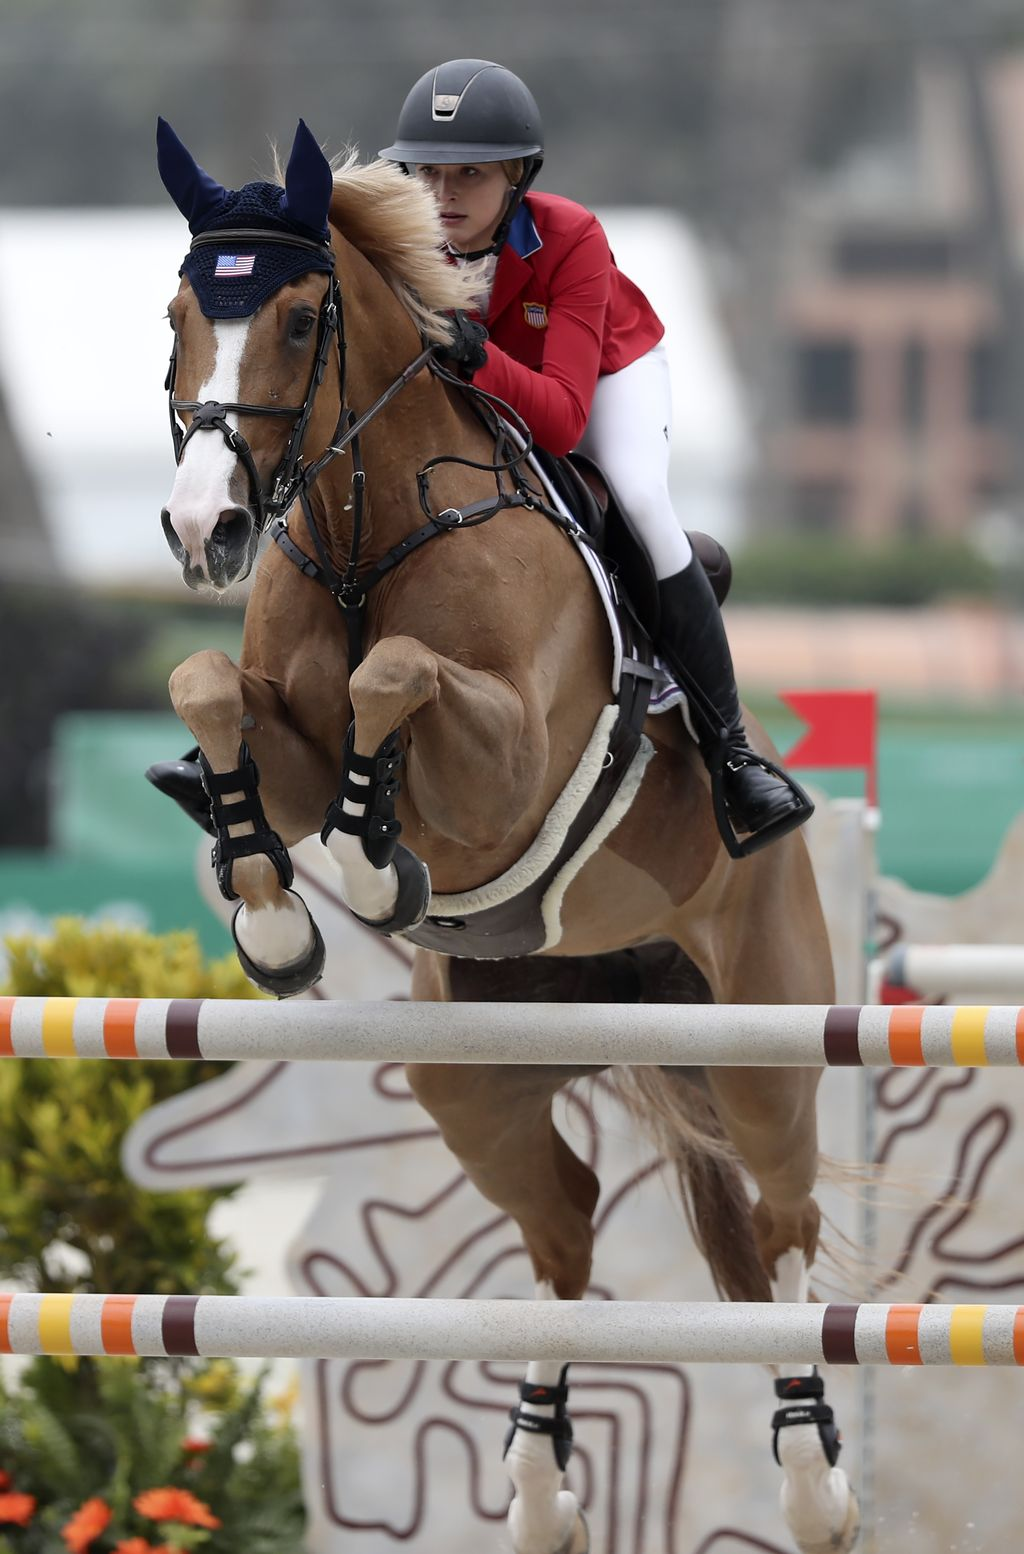 LIMA, PERU - AUGUST 07: Eve Jobs of United States riding Venue D'Fees Des Hazalles competes during equestrian Jumping Team at Army Equestrian School on Day 12 of Lima 2019 Pan American Games on August 7, 2019 in Lima, Peru. (Photo by Raul Sifuentes/Getty Images for FEI)